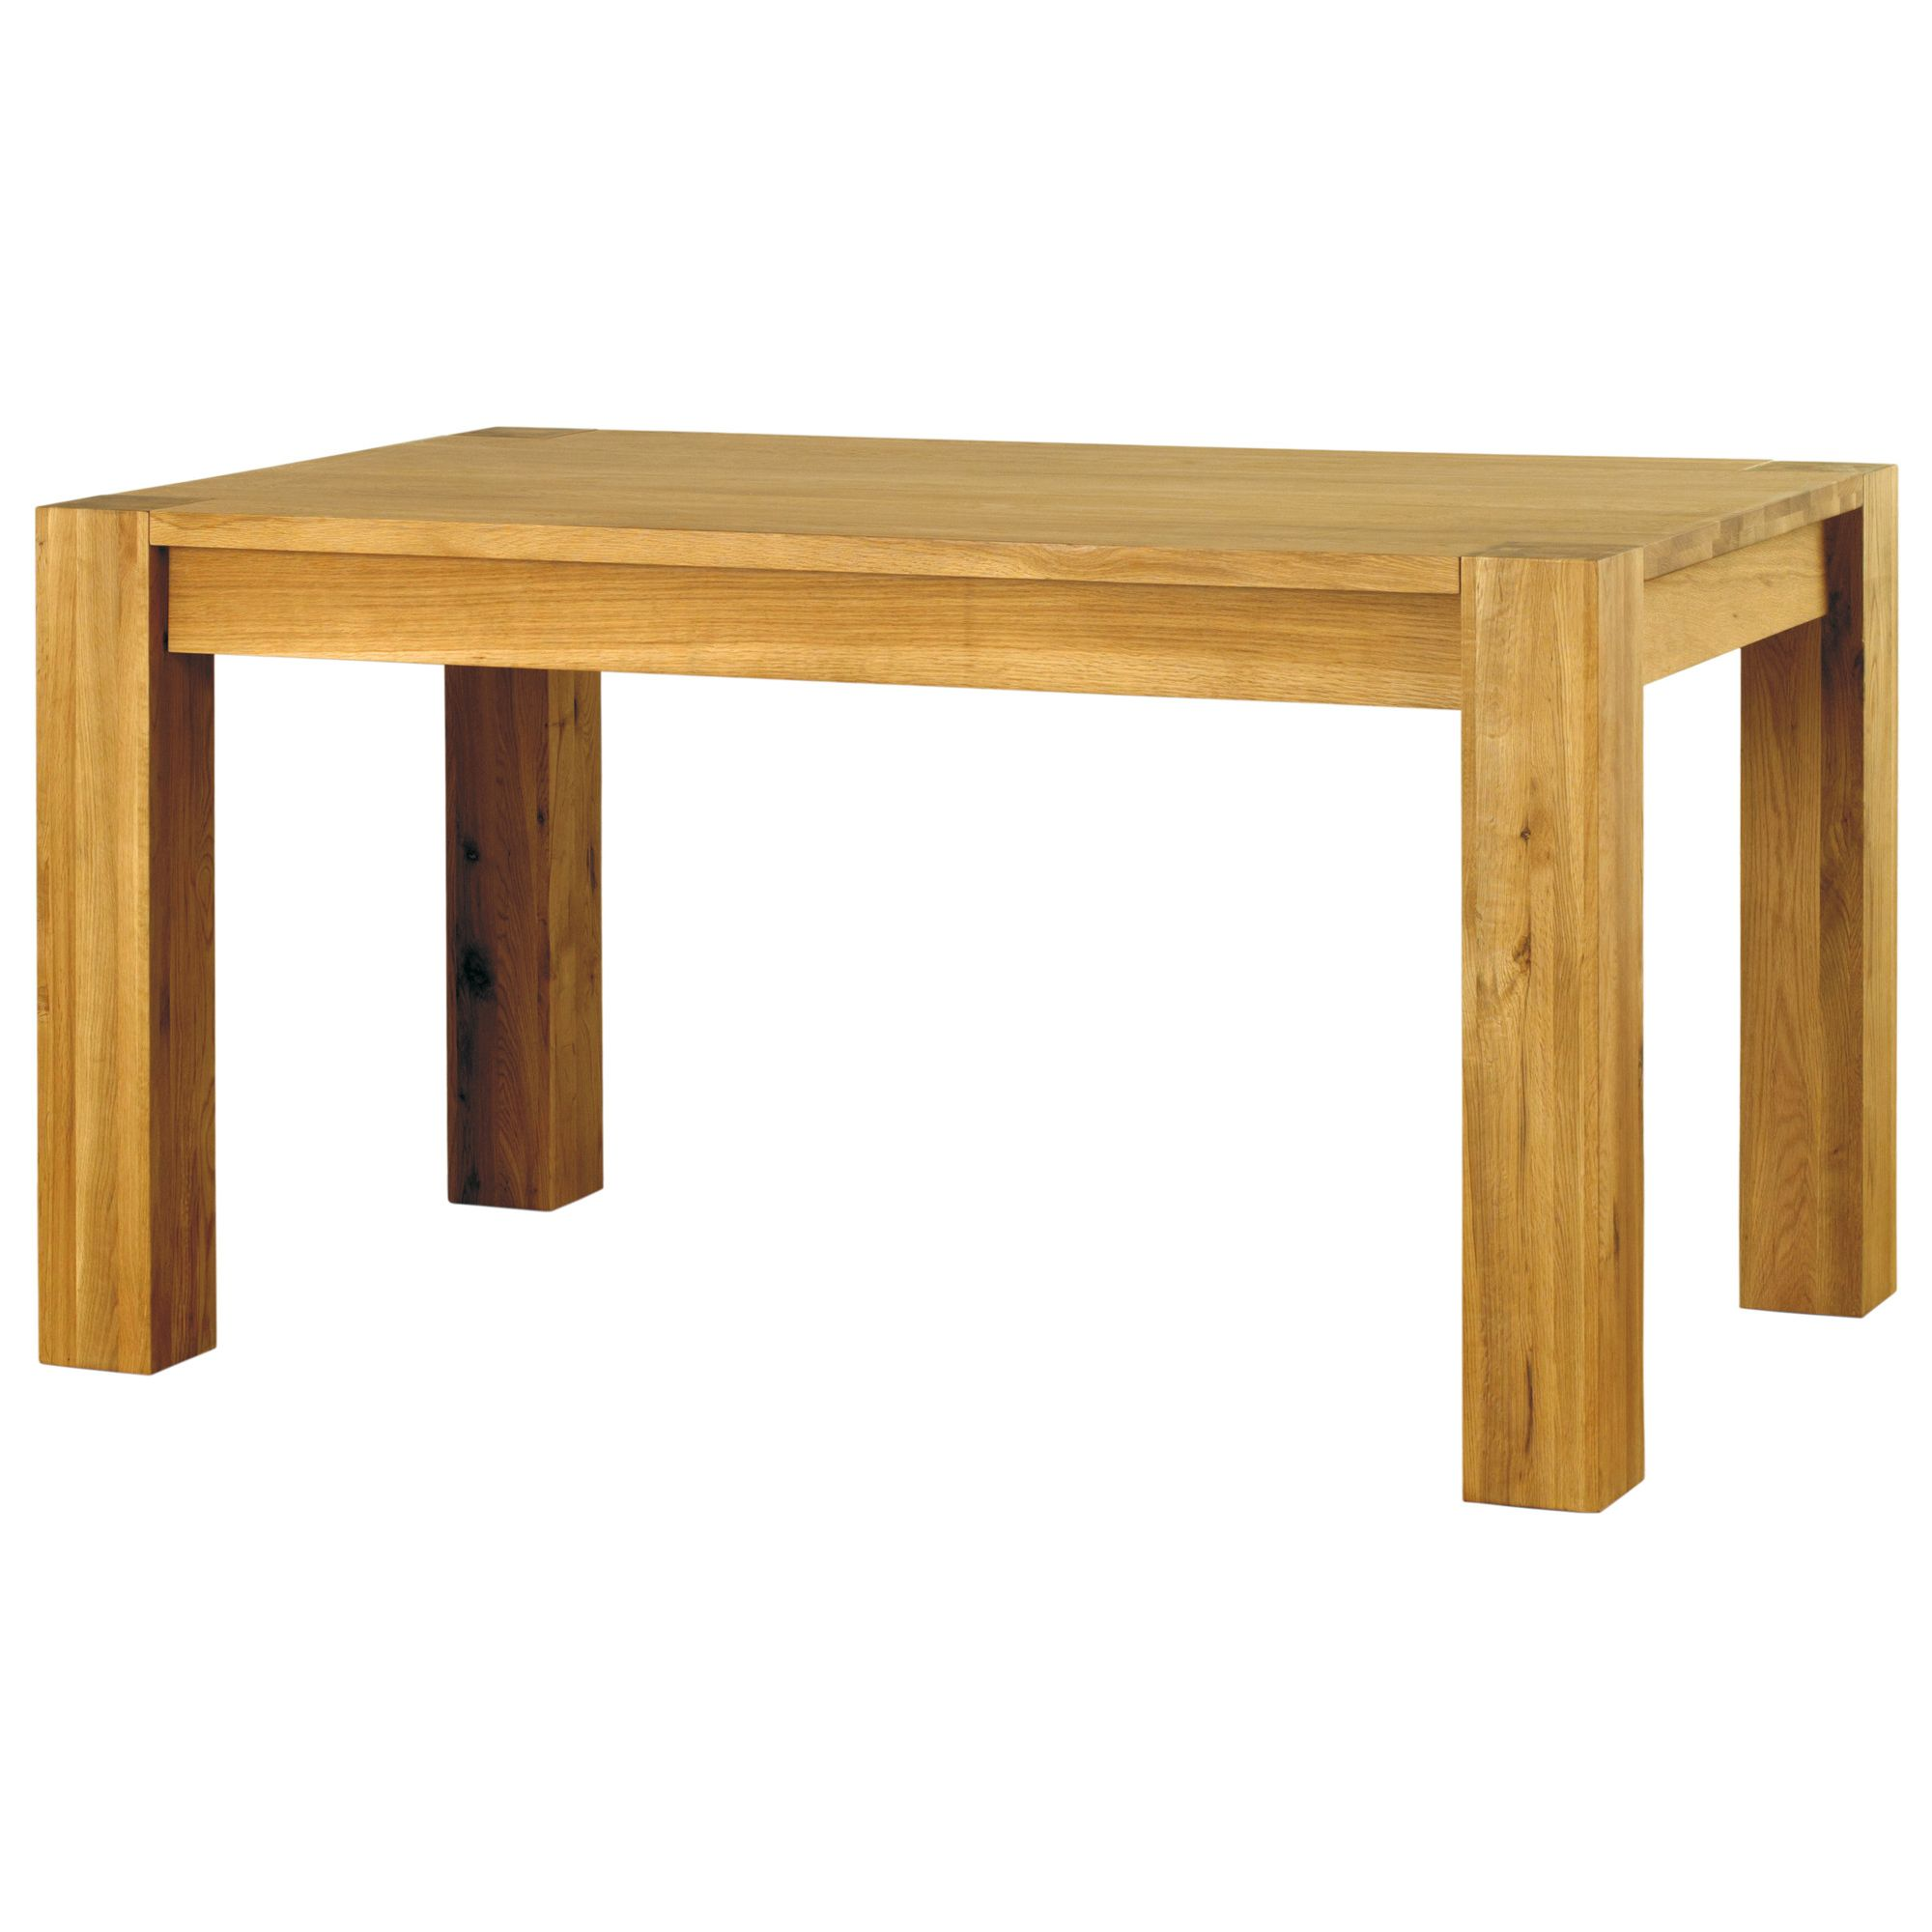 Baumhaus Aston Solid Oak Dining Table (Seats 4-6)